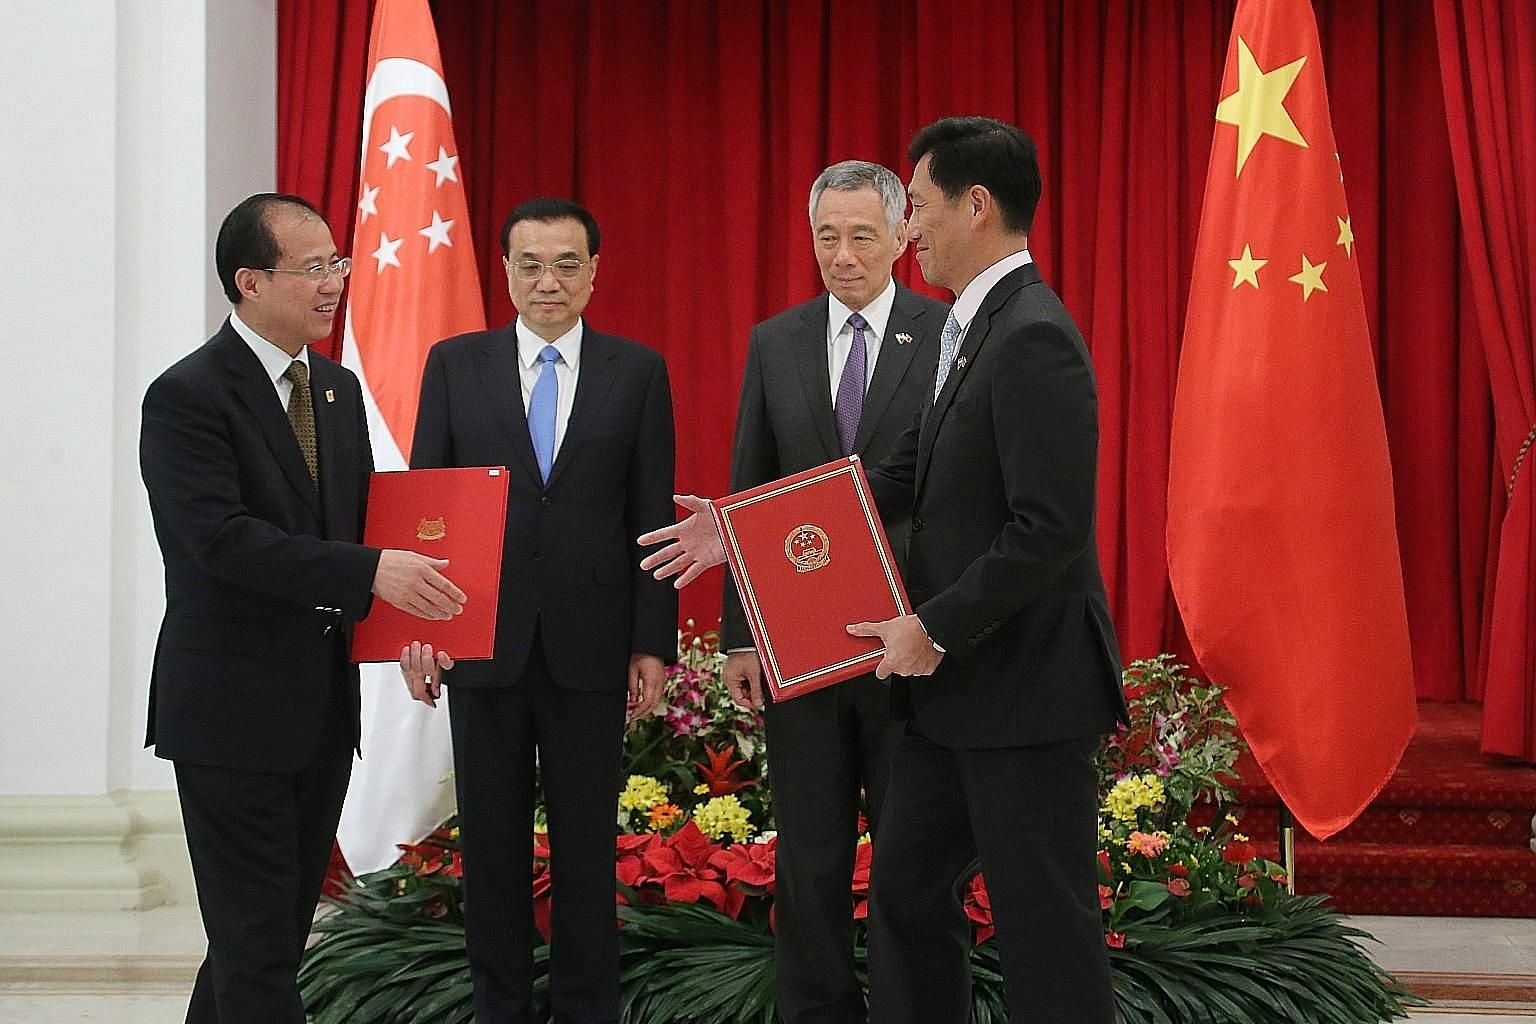 Chinese Premier Li Keqiang and Singapore Prime Minister Lee Hsien Loong looking on during an MOU exchange between China's International Trade Representative and Vice-Minister of Commerce Fu Ziying (left) and Education Minister Ong Ye Kung at the Ista